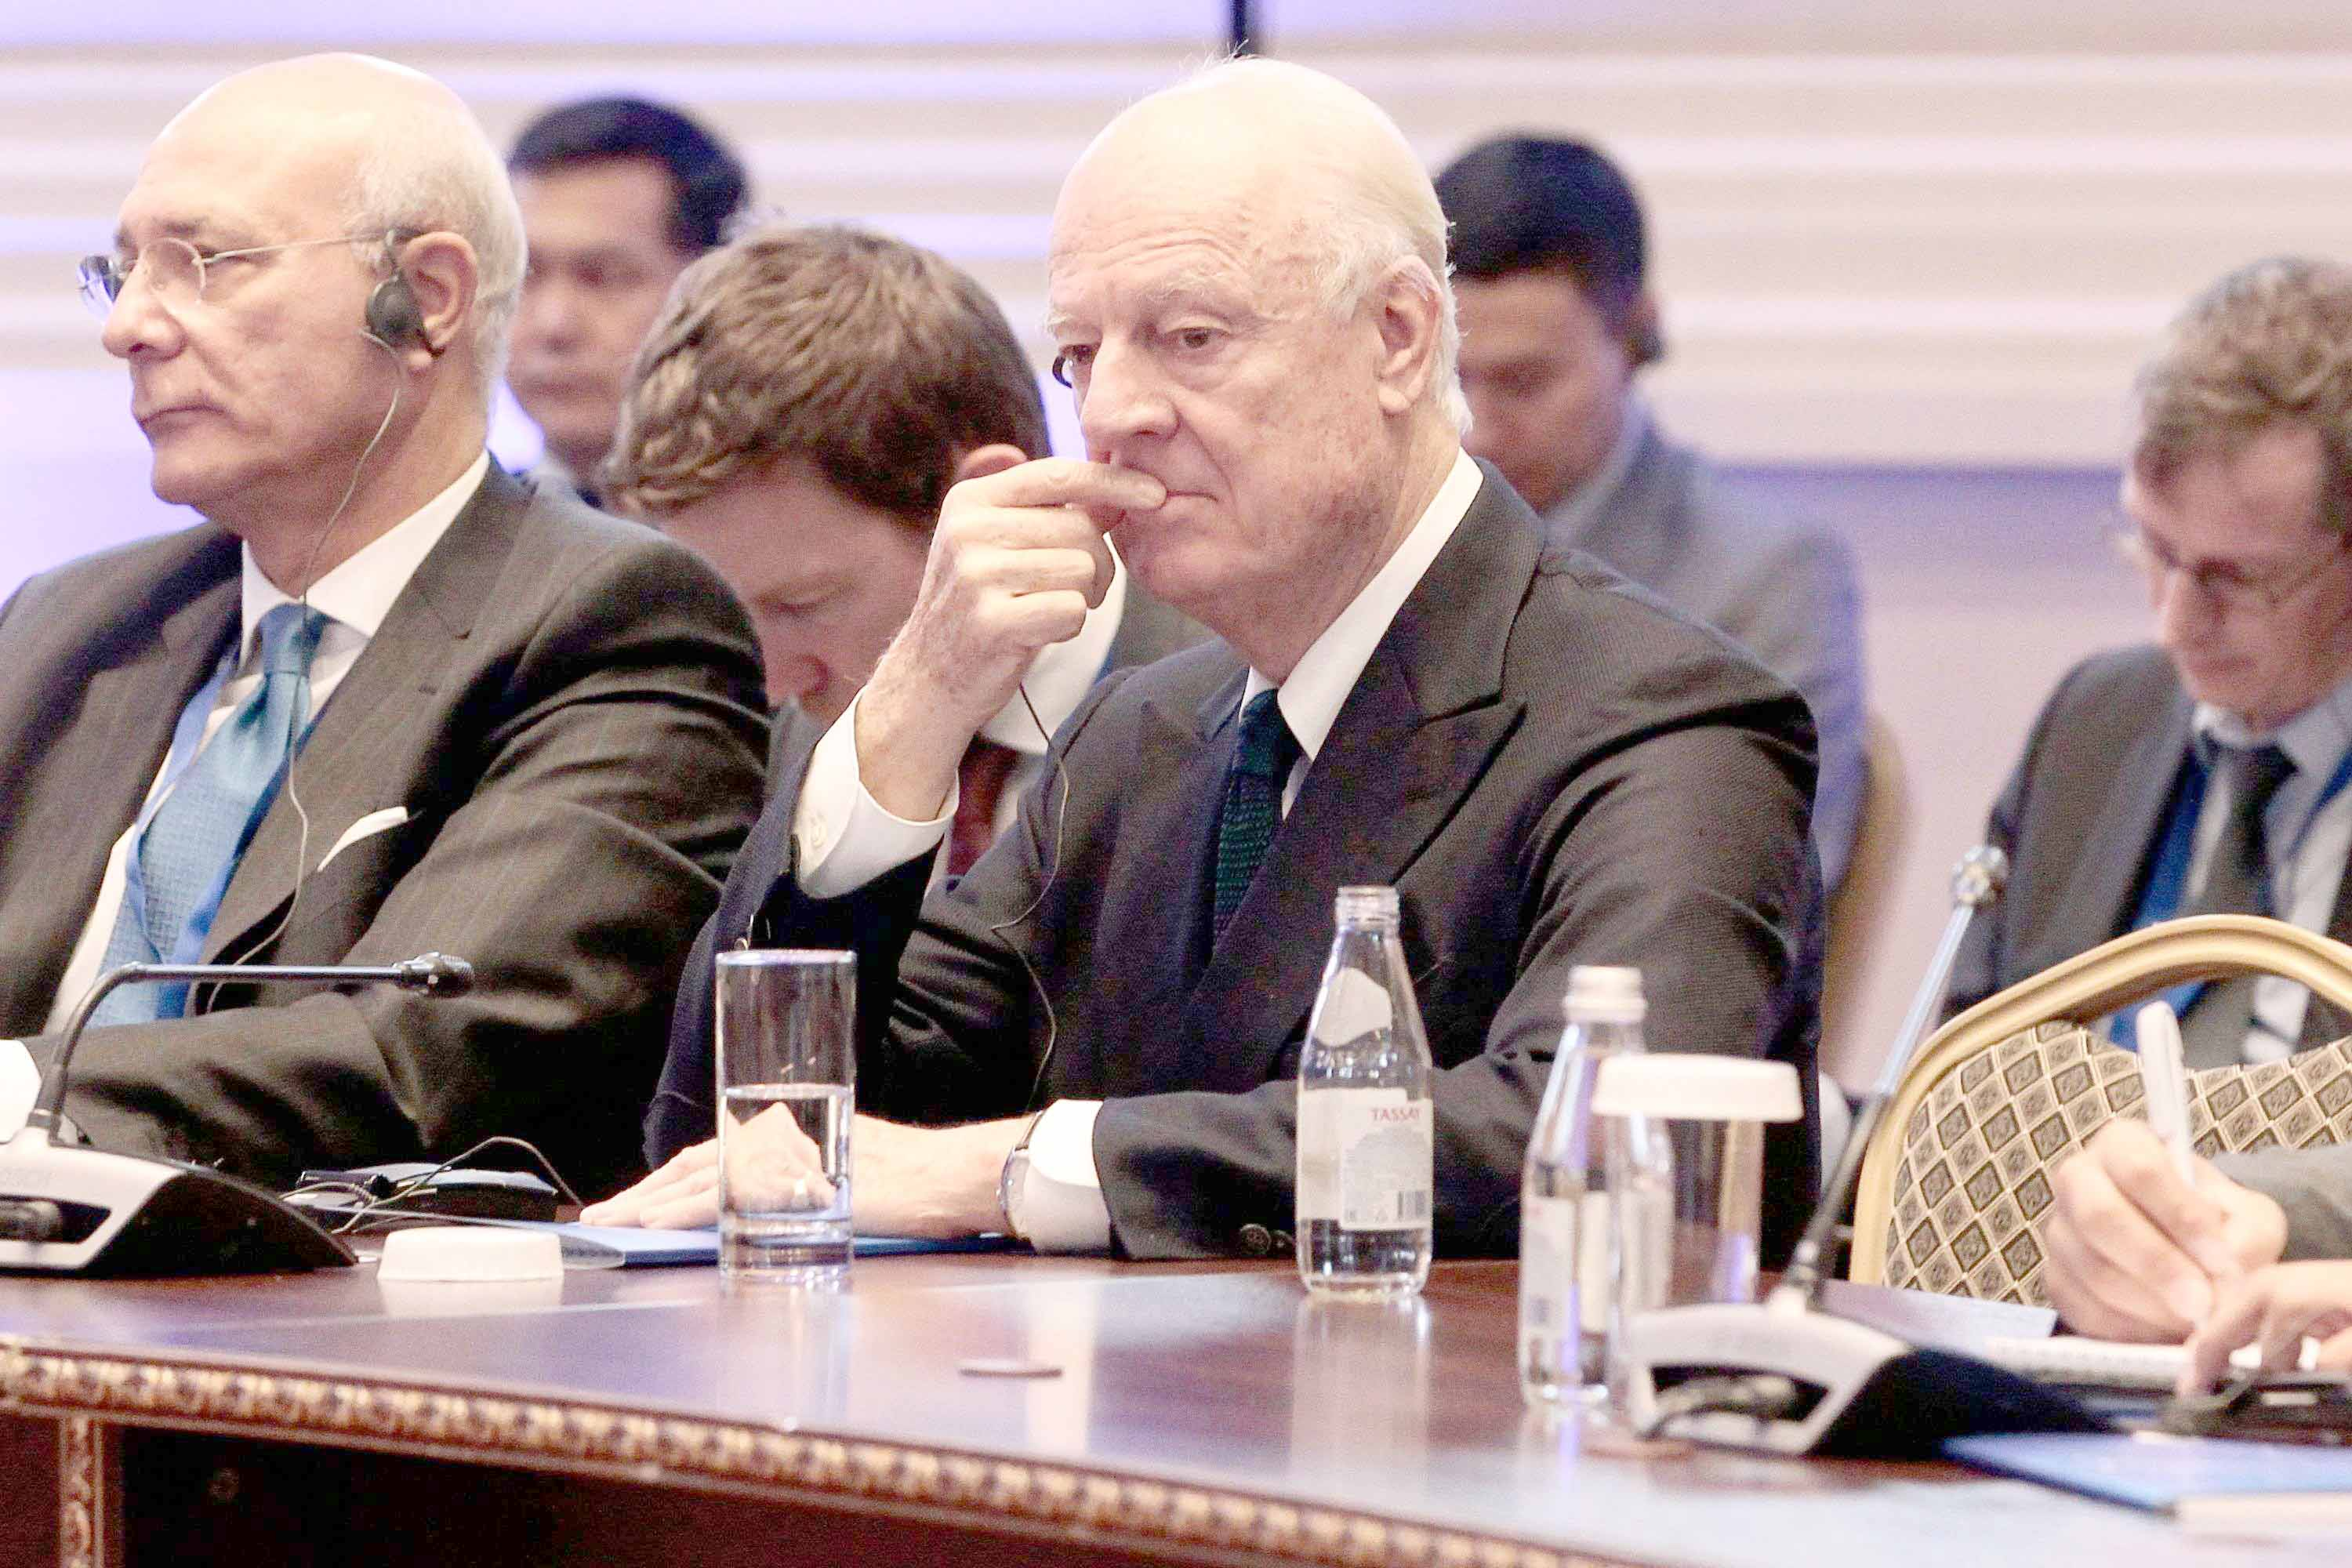 In deadlock. UN Special Envoy for Syria Staffan de Mistura (C) attends the plenary session of Syria peace talks in Astana, on November 29. (AFP)